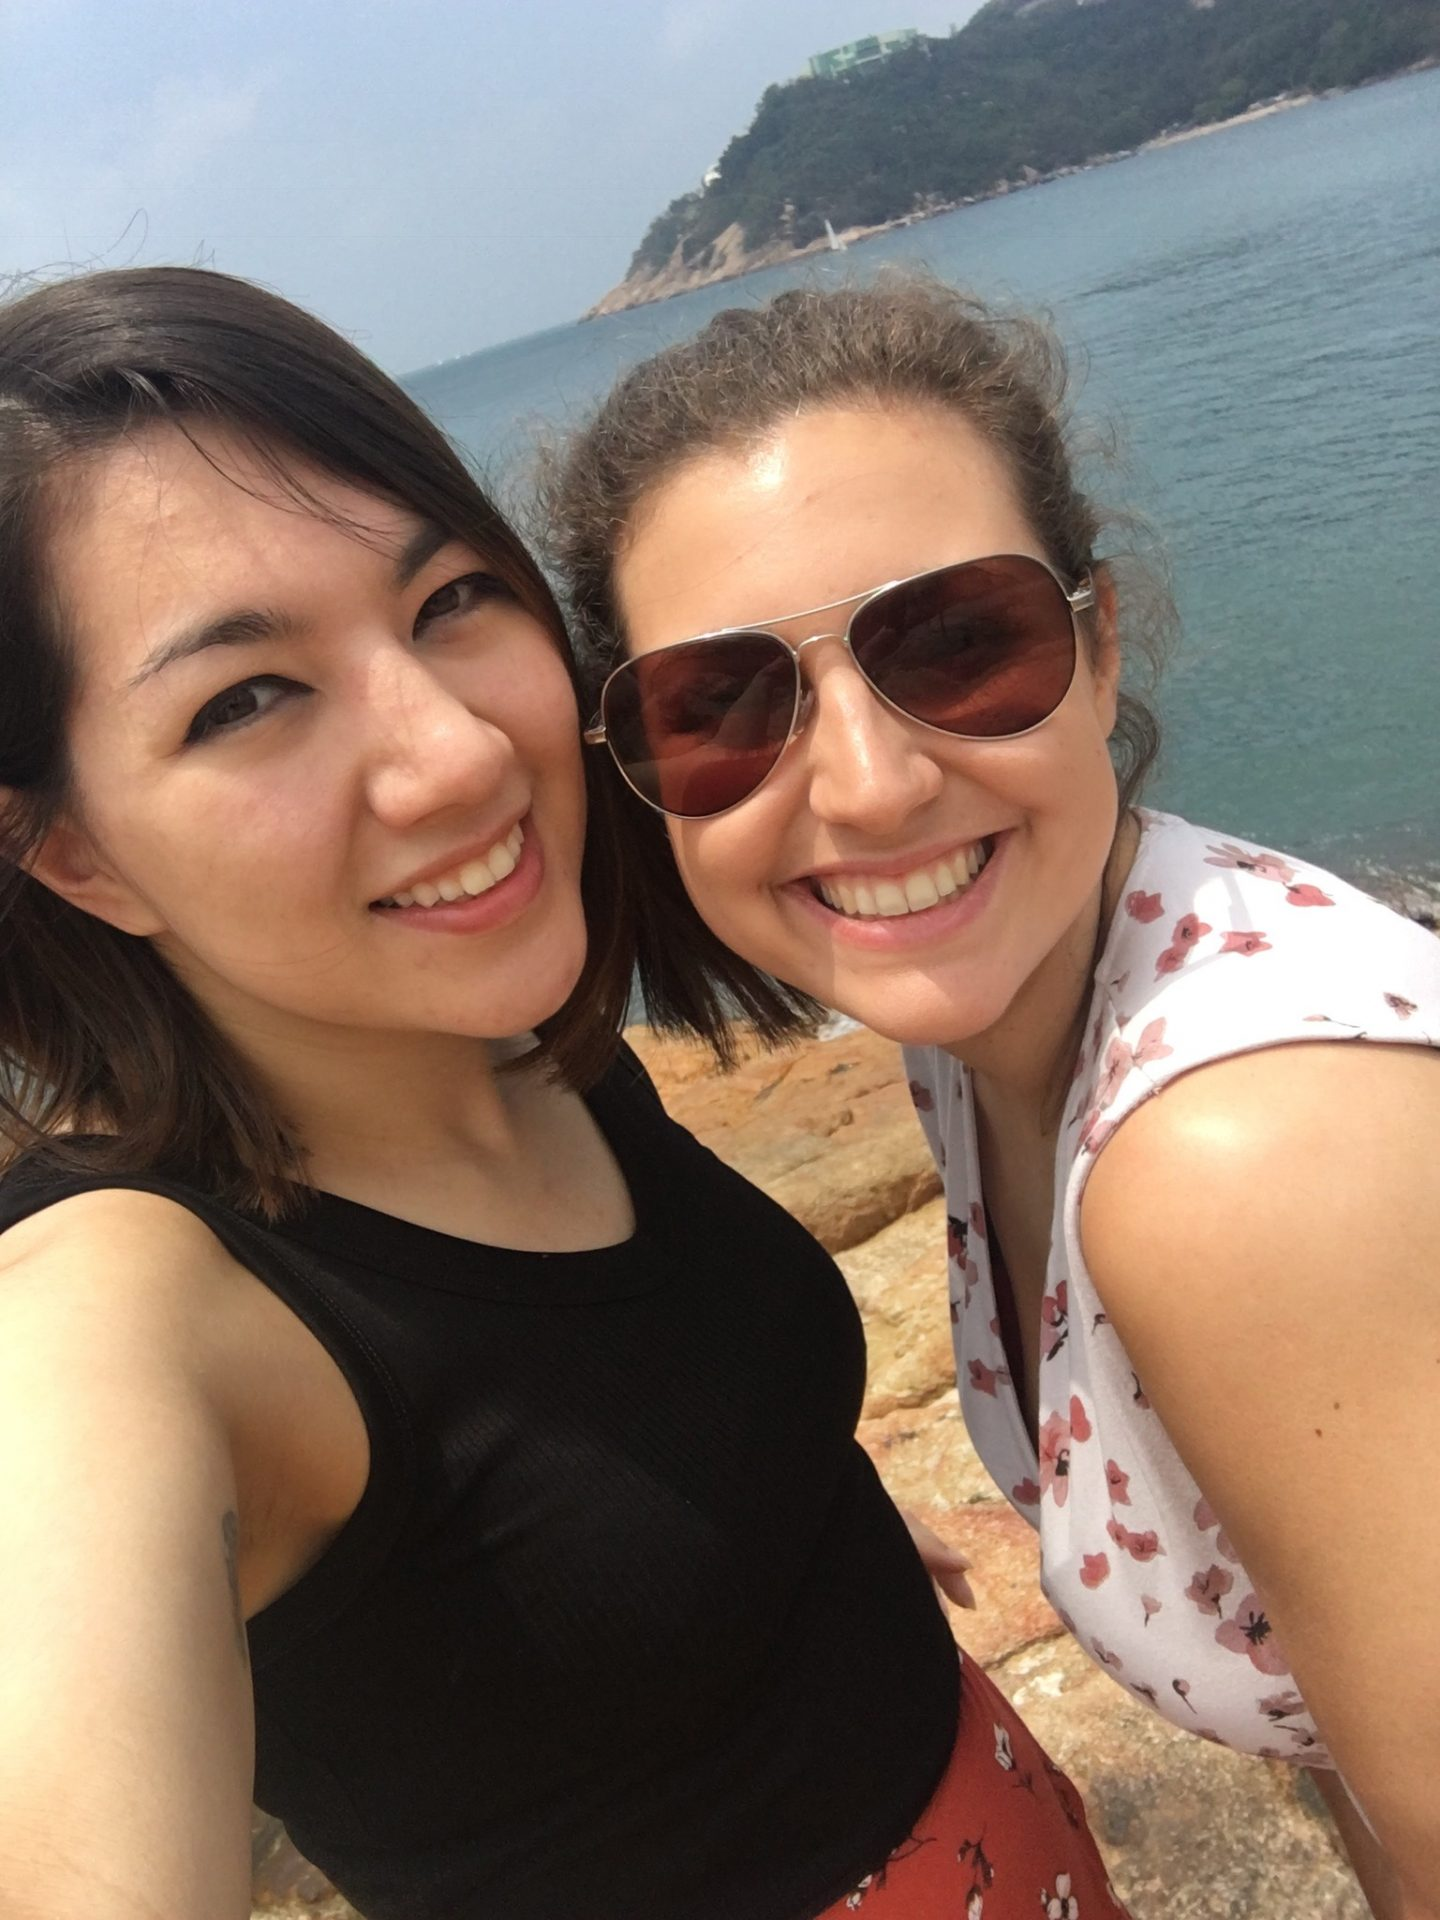 Two girls in Stanley in Hong Kong on a sunny day, looking directly into the camera smiling with the sea behind